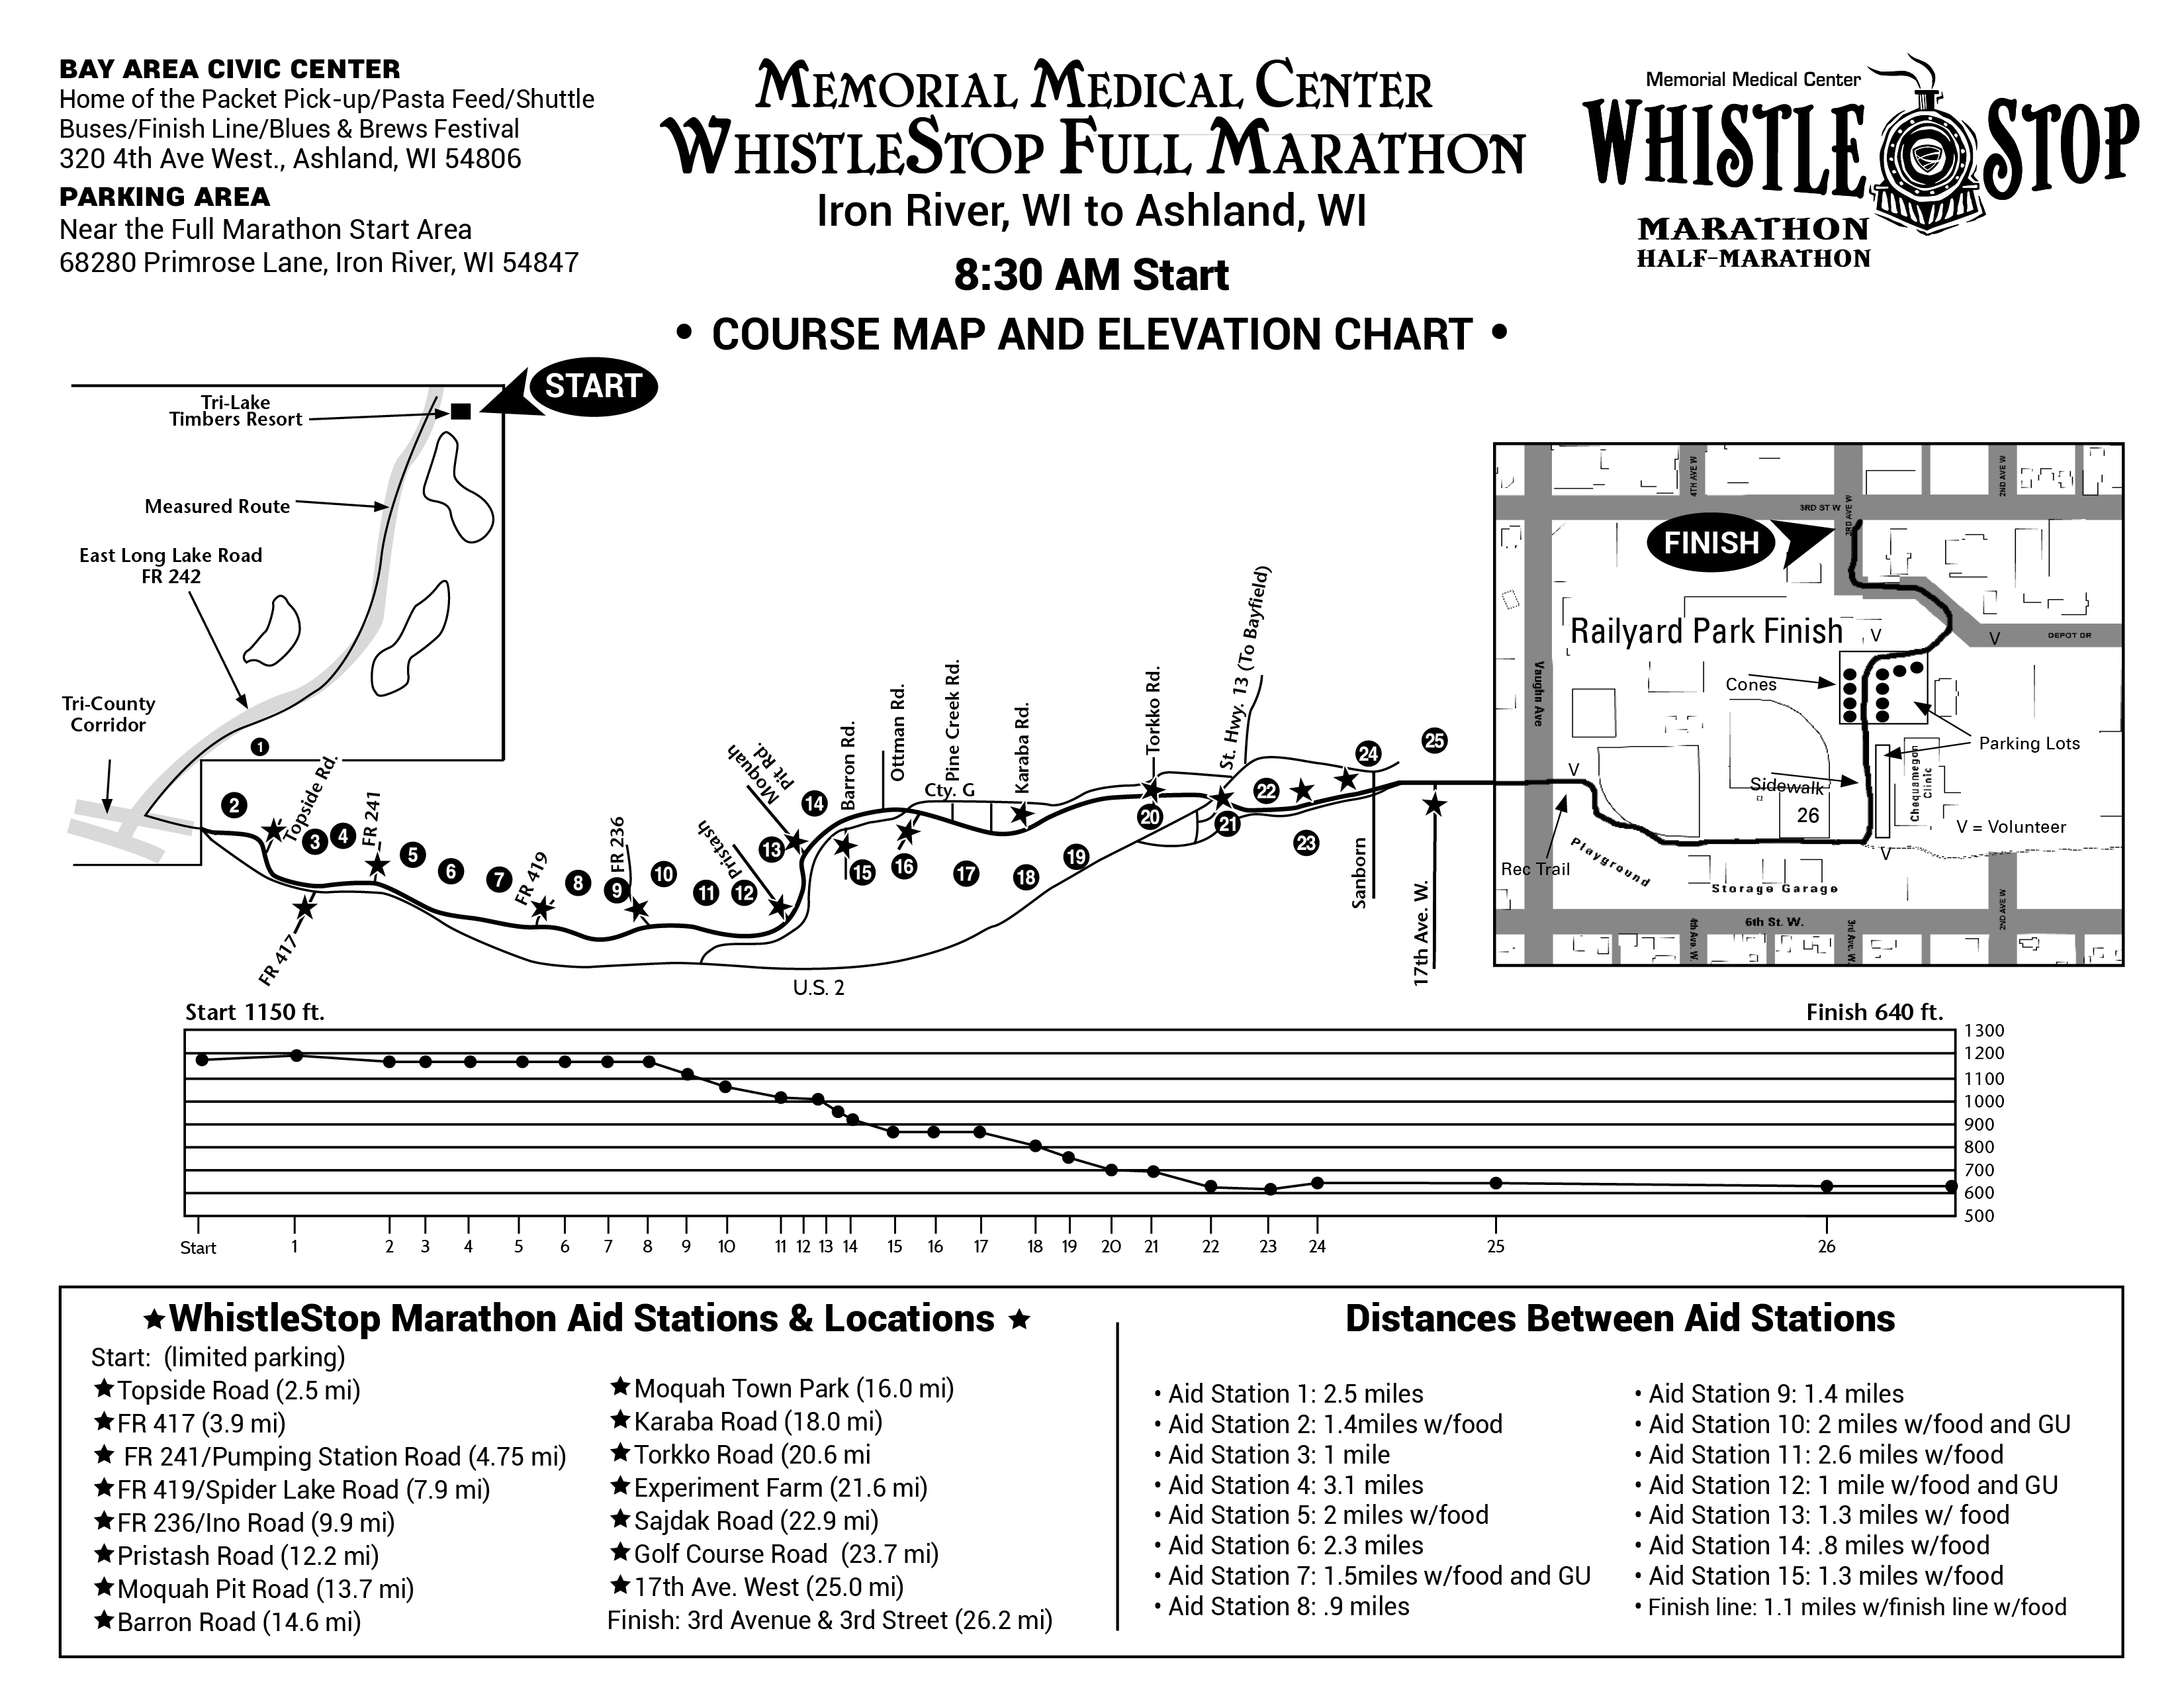 WhistleStop Full Marathon Course Map